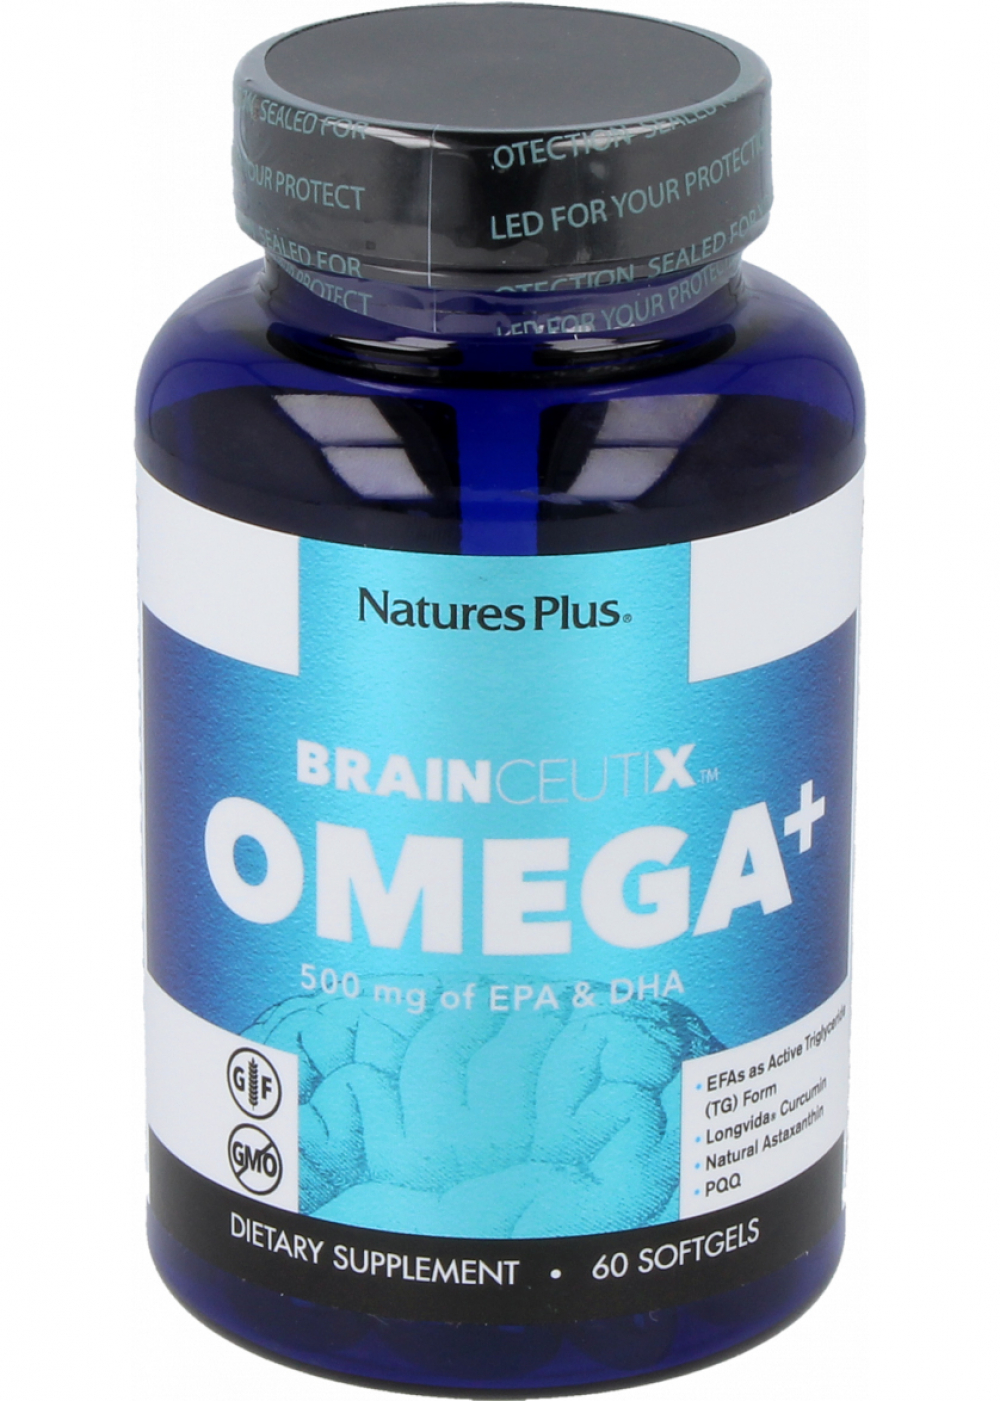 Natures Plus Brainceutix Omega+ (mit PQQ) 60 Softgels